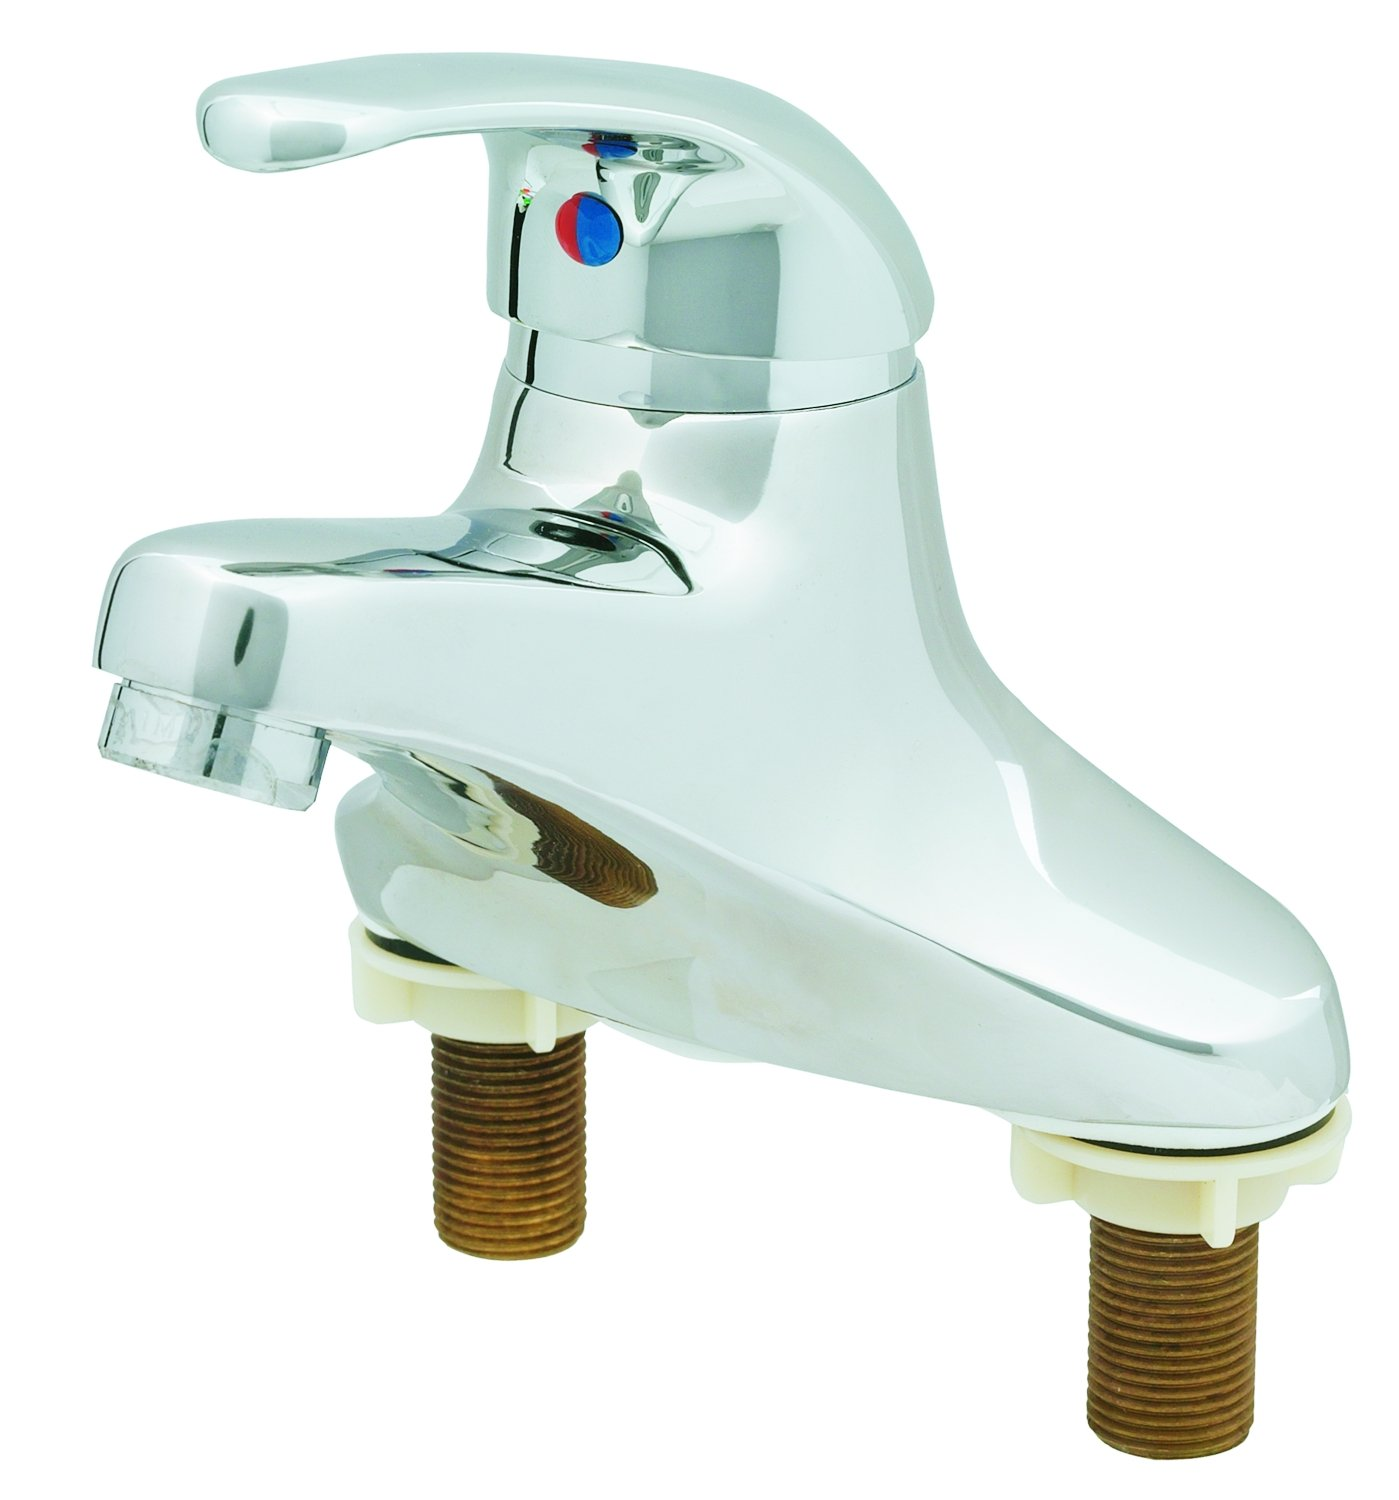 T&S Brass B-2710 Single Lever Faucet, 4-Inch Centerset, 4-Inch Handle, 2.2 Gpm Aerator, Pop-Up Drain Assembly by T&S Brass B002WDPKX0